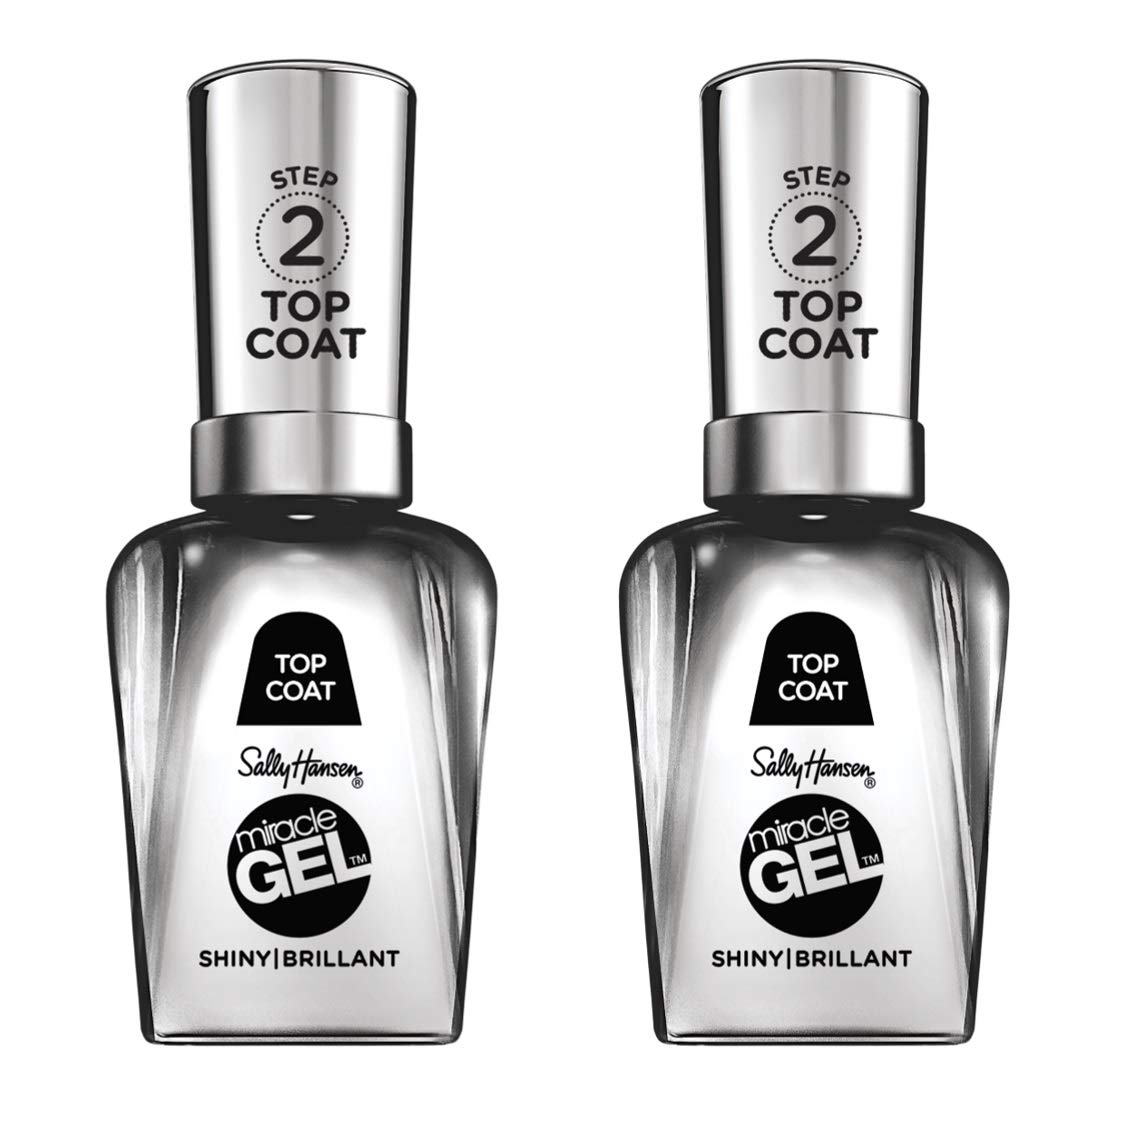 Sally Hansen Miracle Gel Nail Polish - Shiny Top Coat Duo Pack (Packaging May Vary)